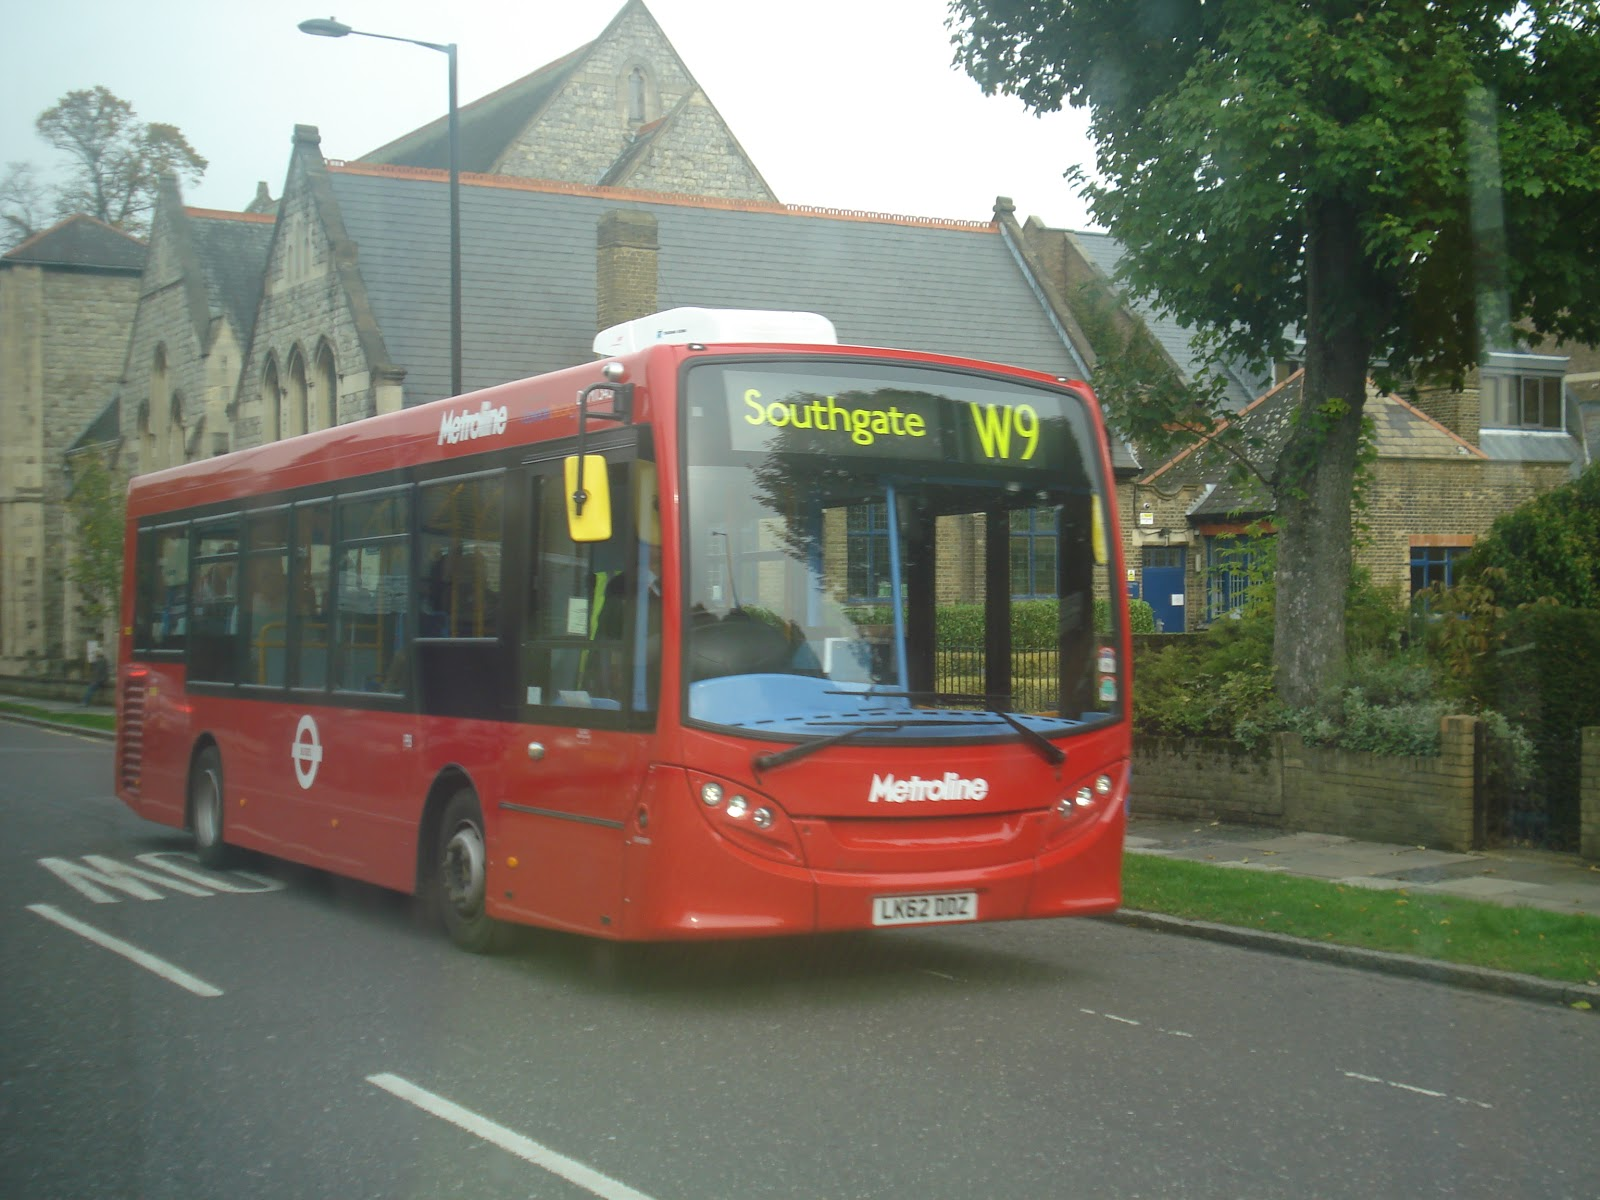 Wltm Transport Blog Routes 103 234 W9 New Buses Amp Route